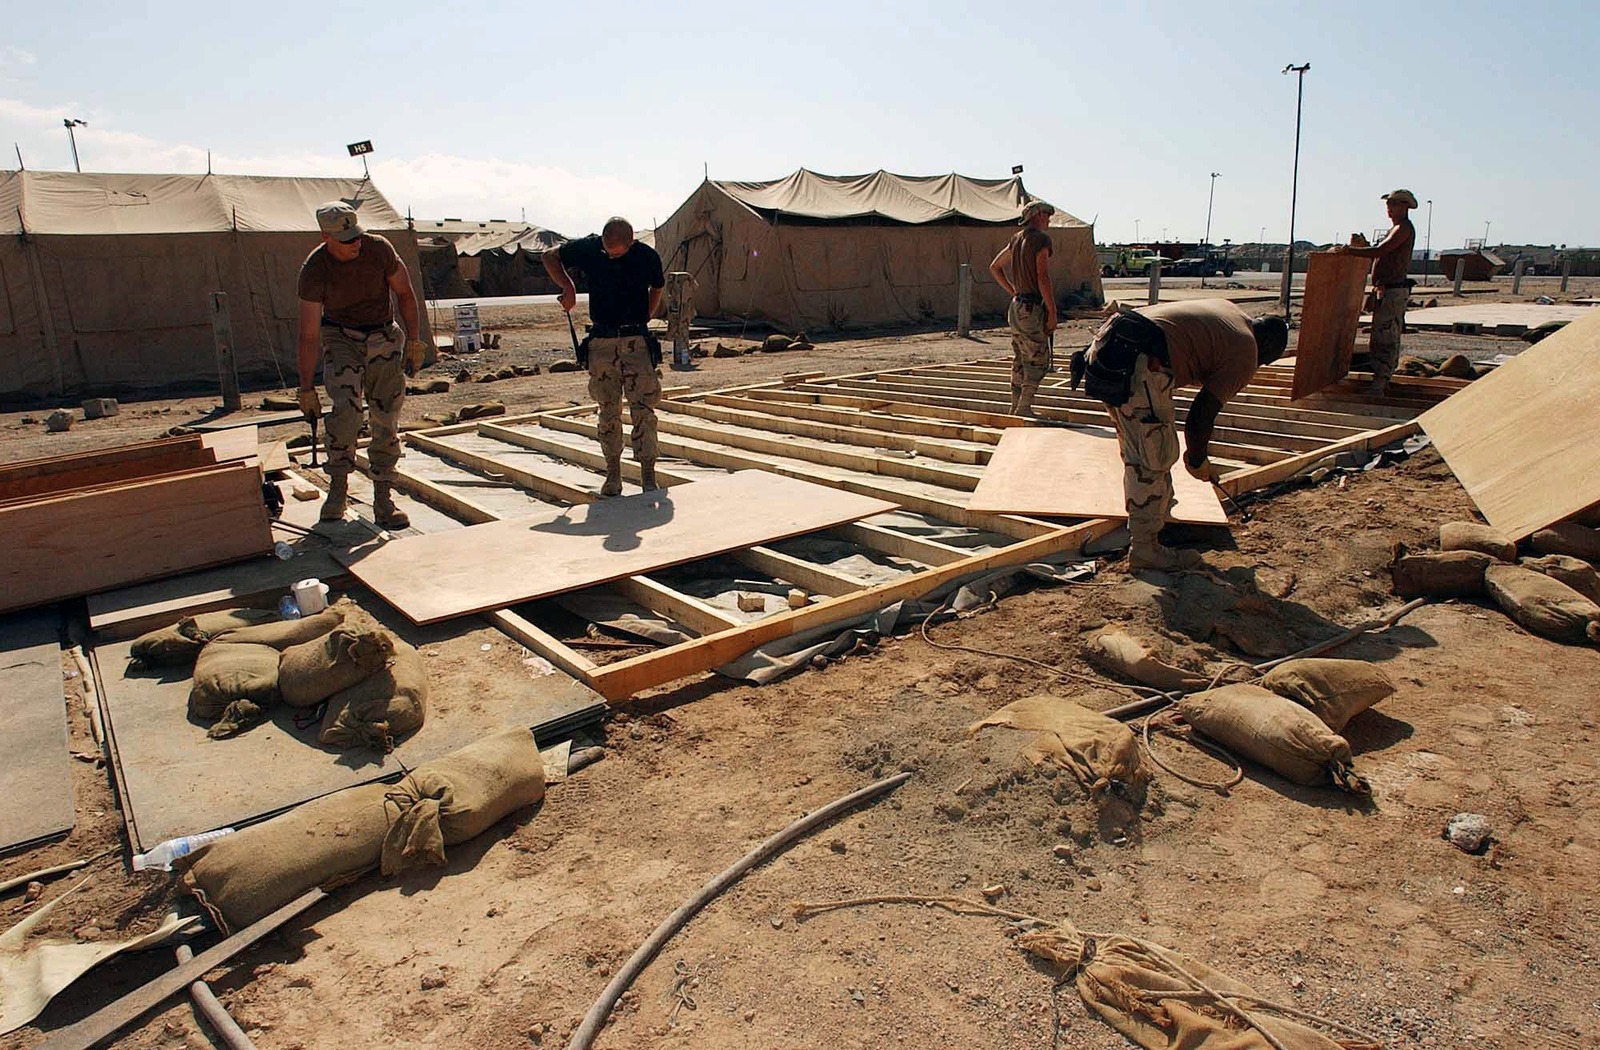 US Air Force (USAF) structural workers assigned to the 321st Expeditionary Civil Engineering Squadron (CES), breakdown a temper tent at a forward-deployed location in support of Operation ENDURING FREEDOM